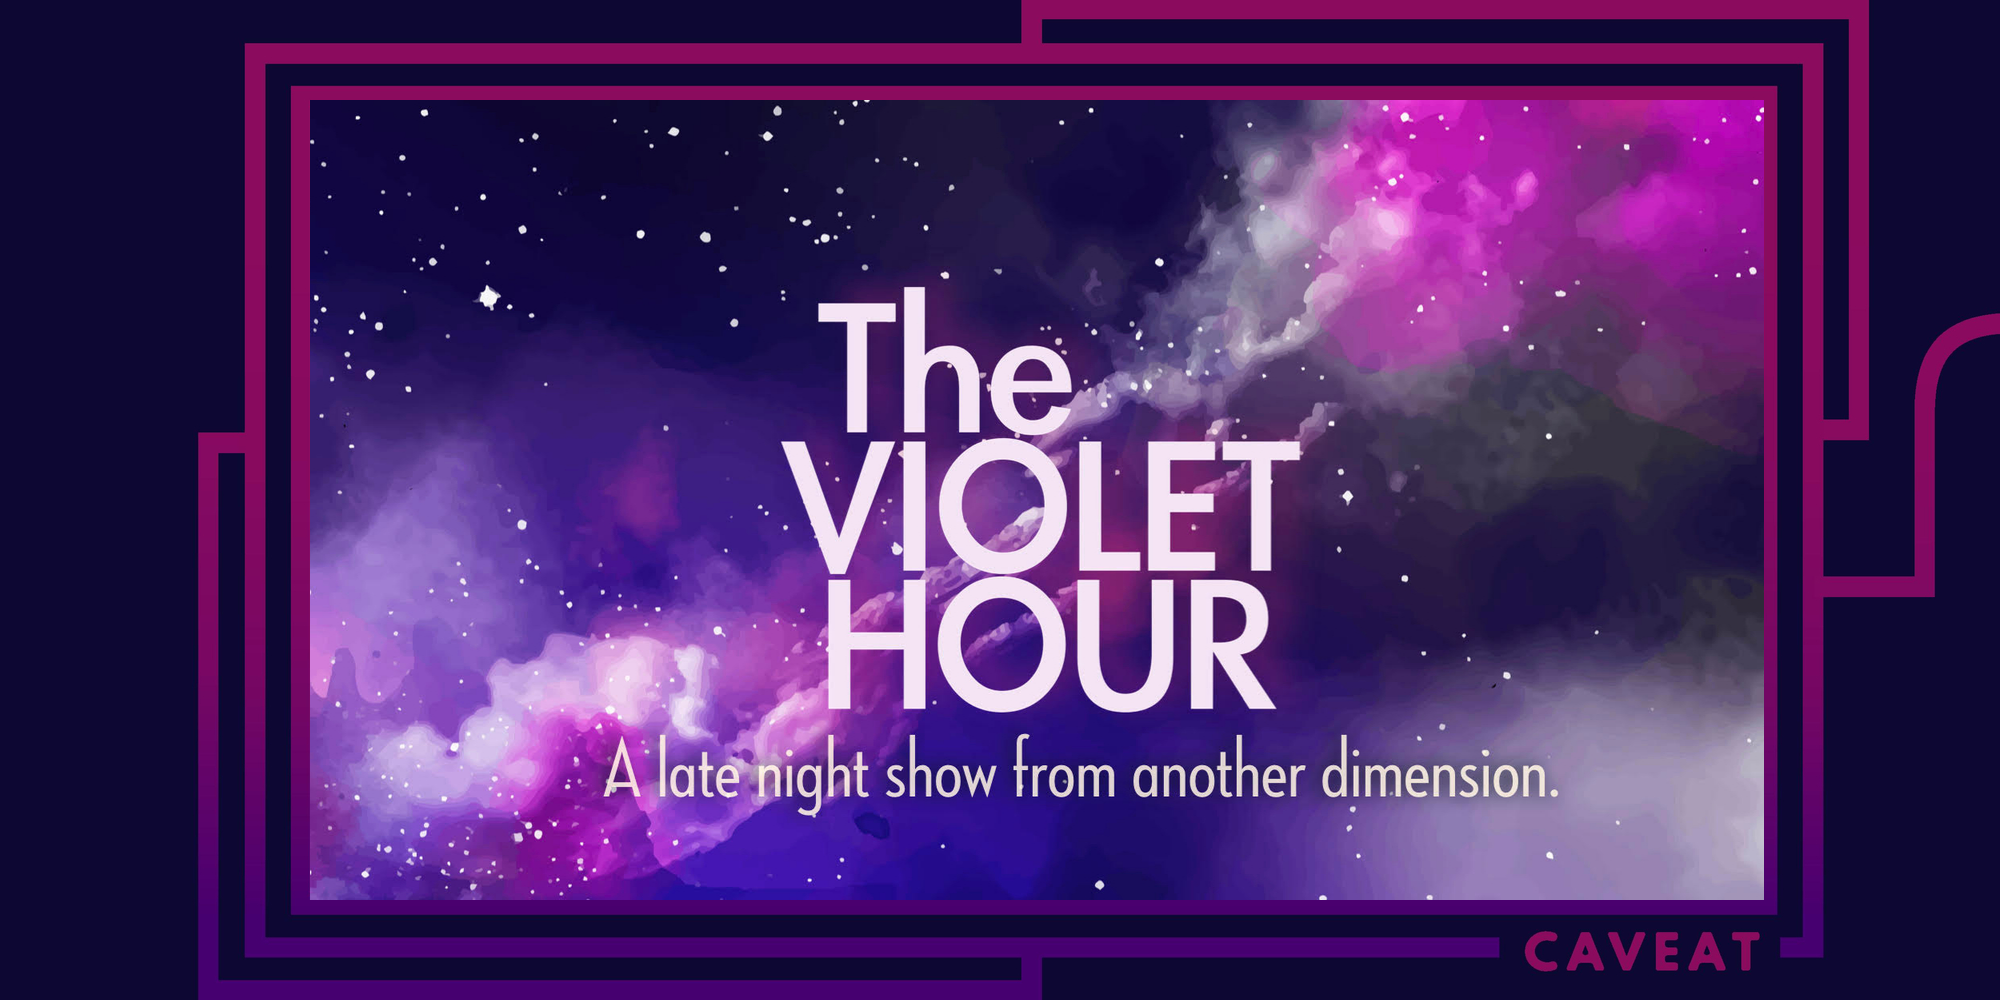 1905 image - The Violet Hour: A Late Night Show From Another Dimension